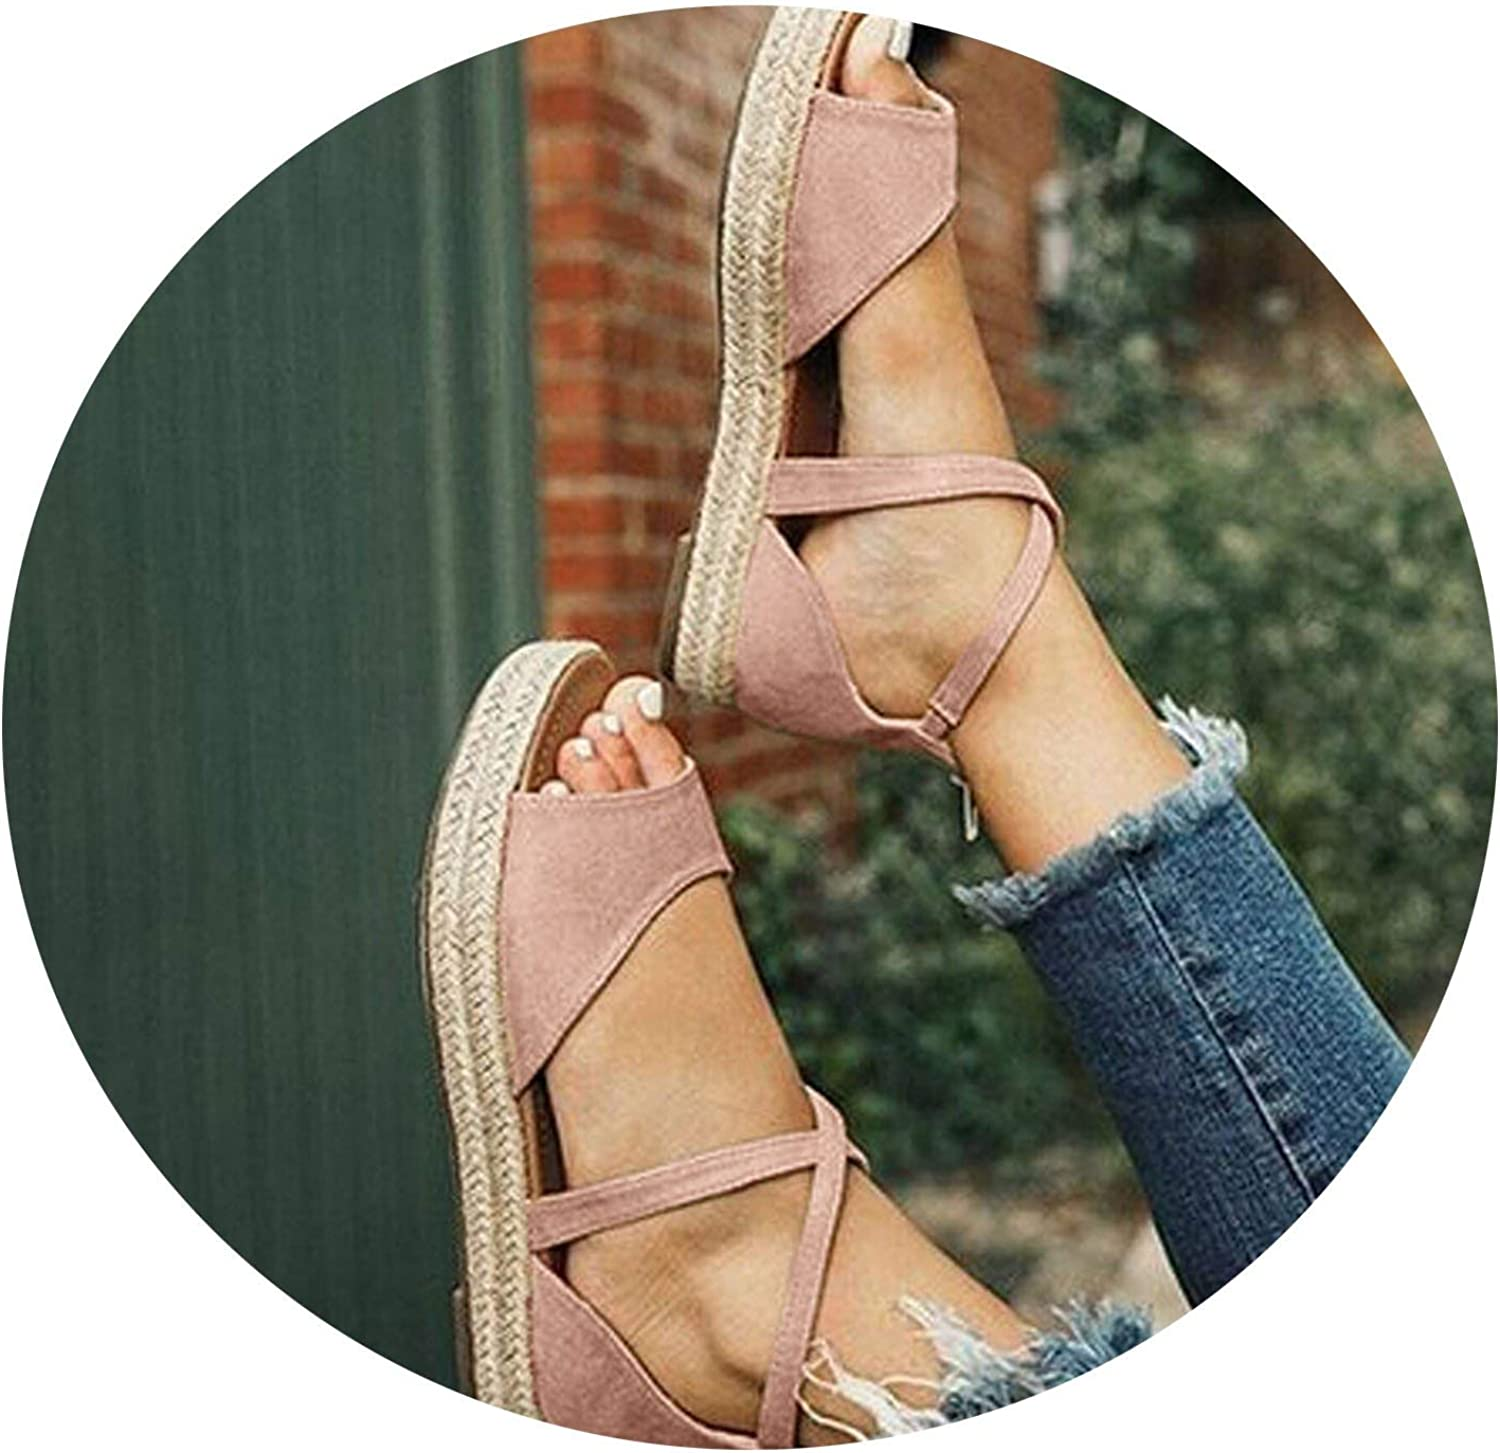 Secret-shop 2019 Women Sandals Gladiator Peep Toe Buckle Design Roman Sandals Women Flat shoes